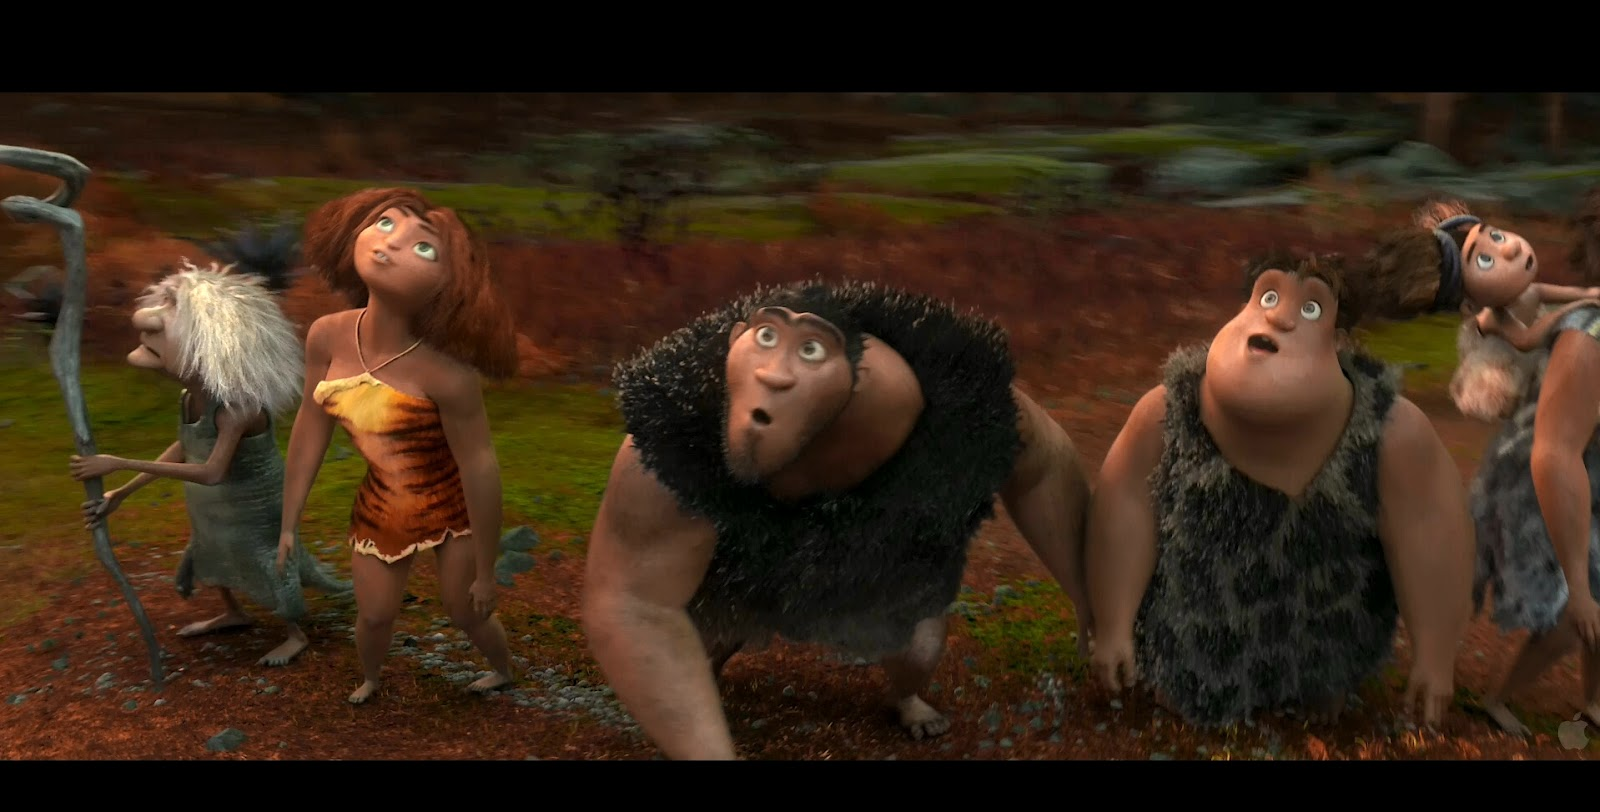 meet the croods cast list